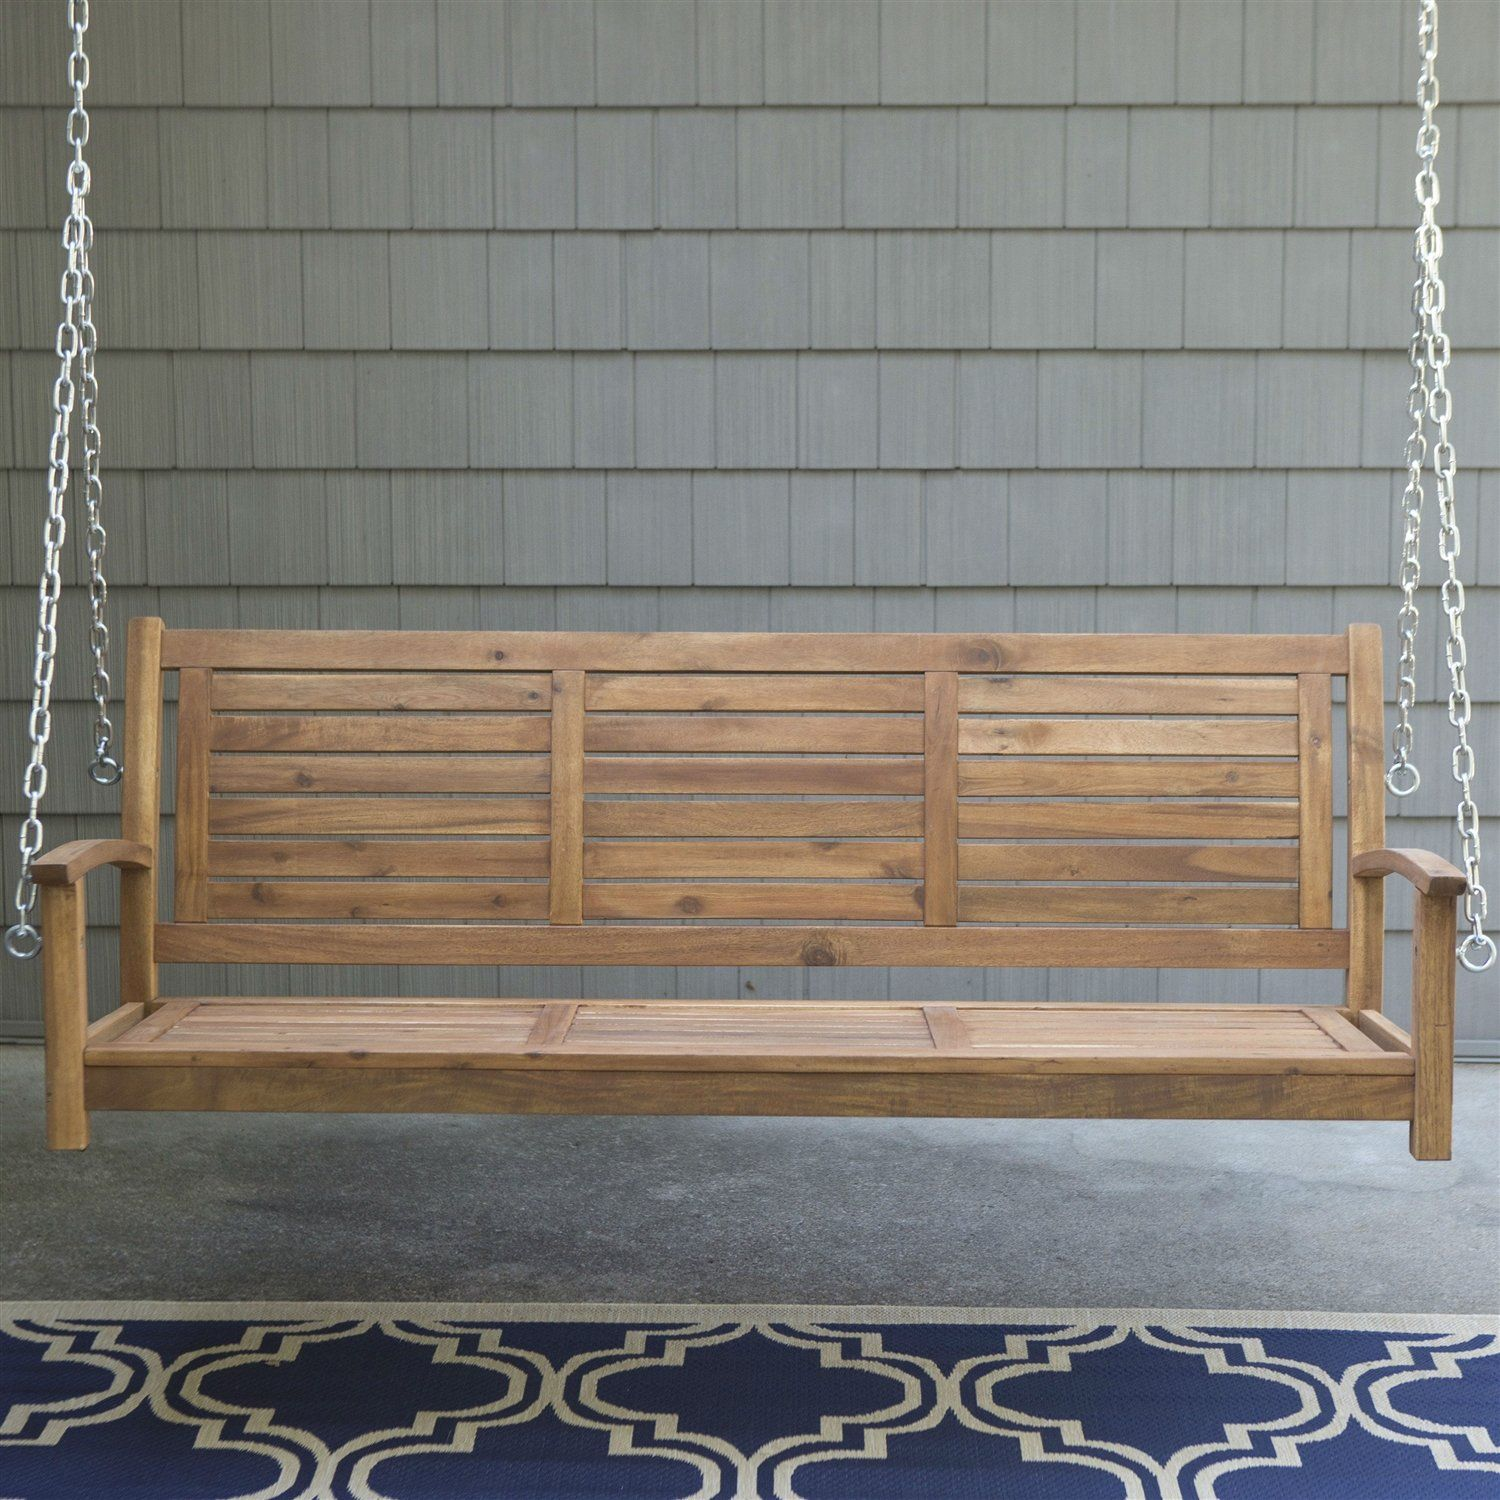 Outdoor ft slatted porch swing in natural acacia wood with hanging